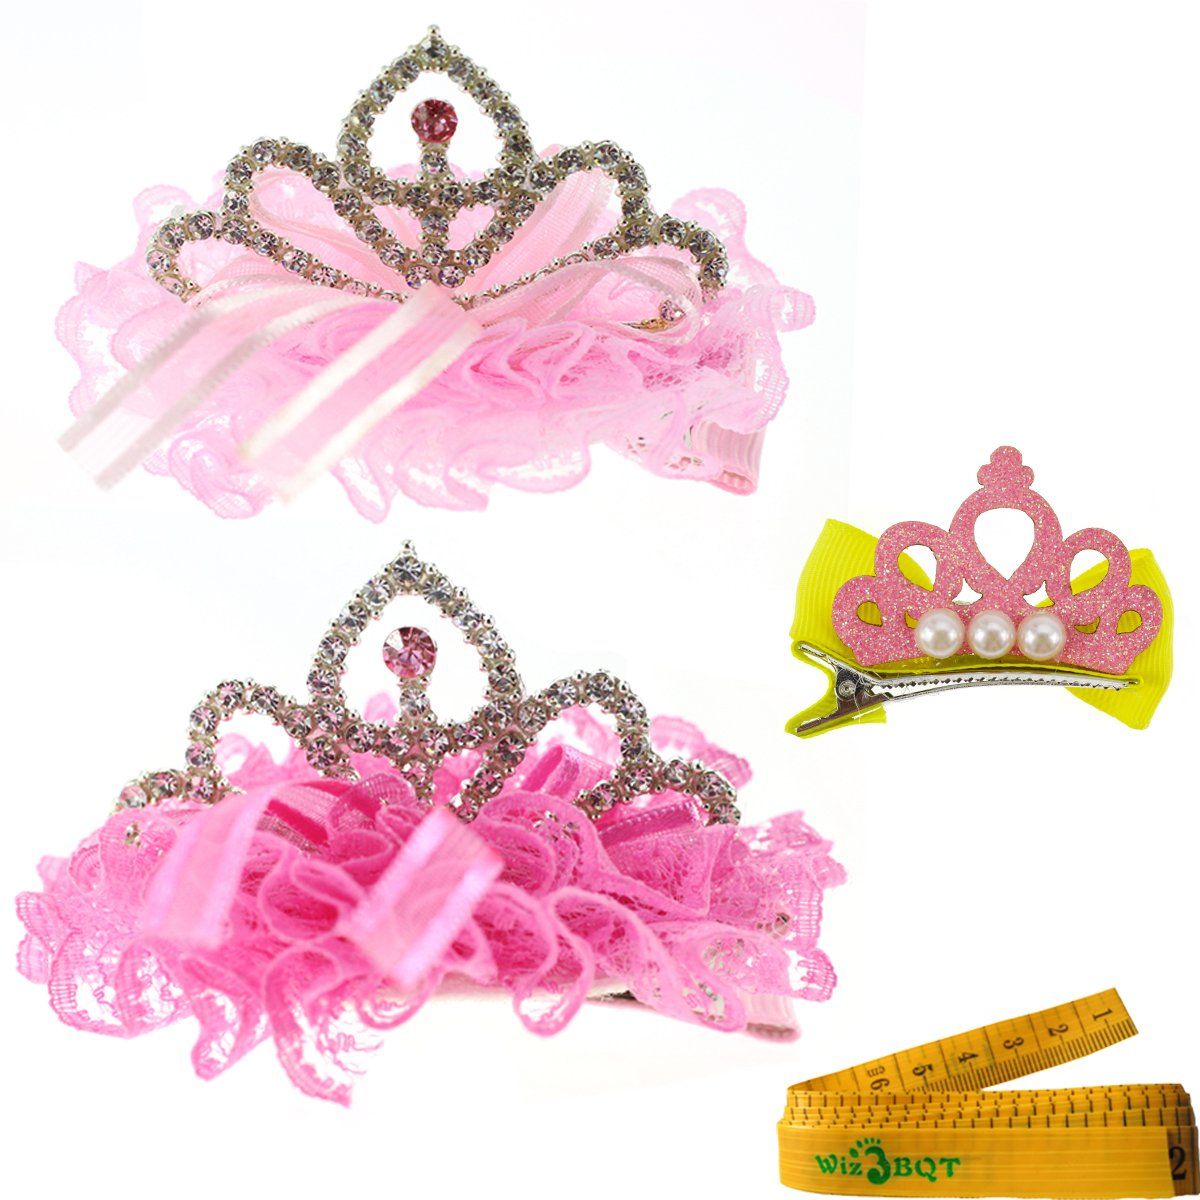 2 Pcs Adorable Cute Cat Dog Pet Birthday Party Crown Shaped Lace Hair Clips and 1 Pcs Crown Shaped Clip for Kitten Puppy Small Dogs Cats Pets (A) by Wiz BBQT